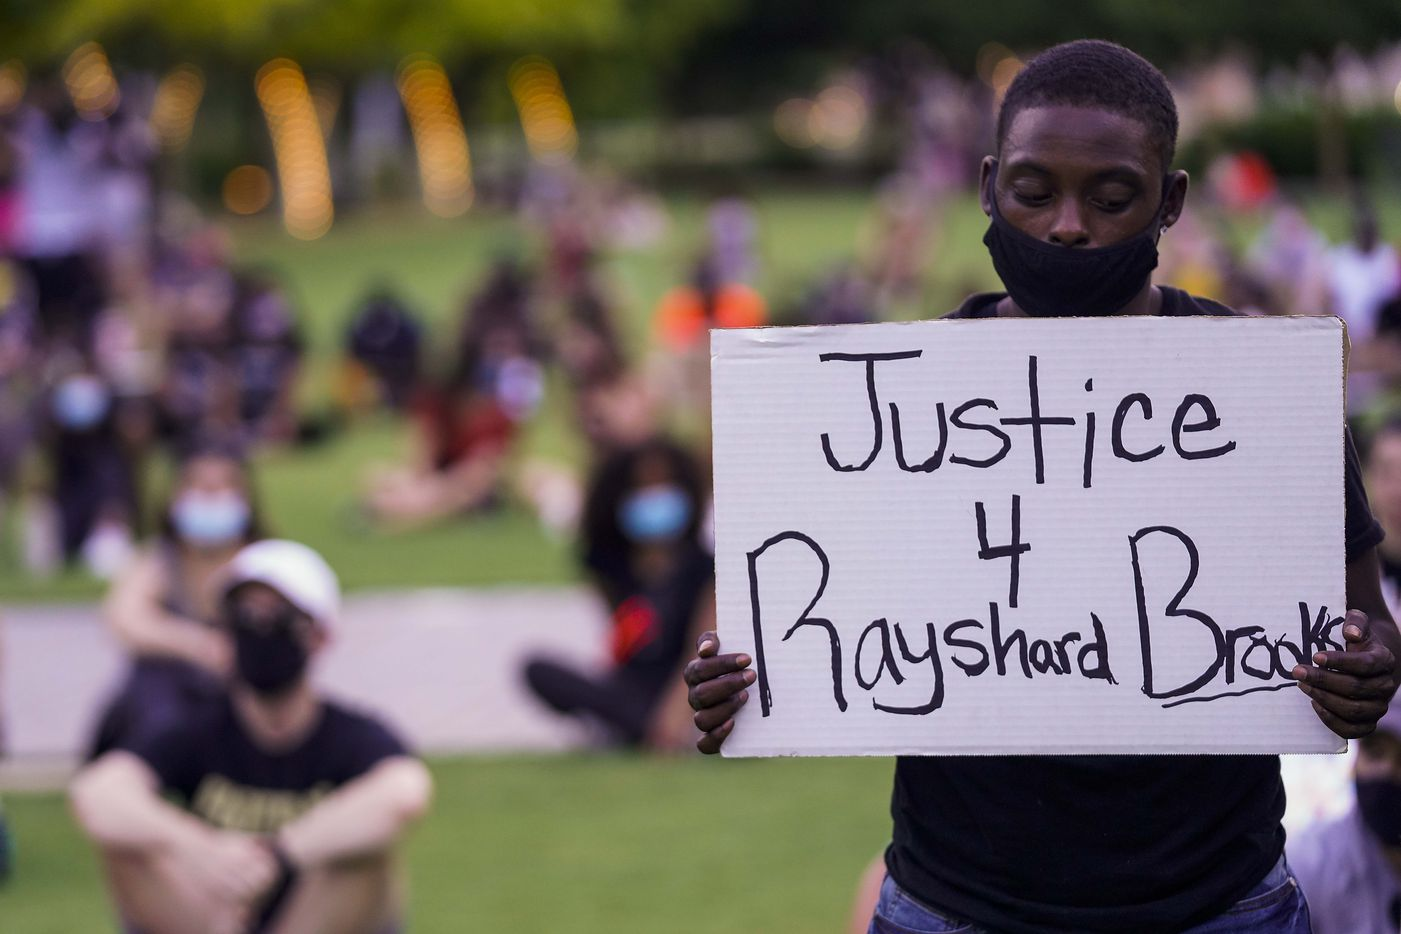 A man holds a sign calling for justice for Rayshard Brooks during rally for Juneteenth in the background at Klyde Warren Park on Friday, June 19, 2020, in Dallas.